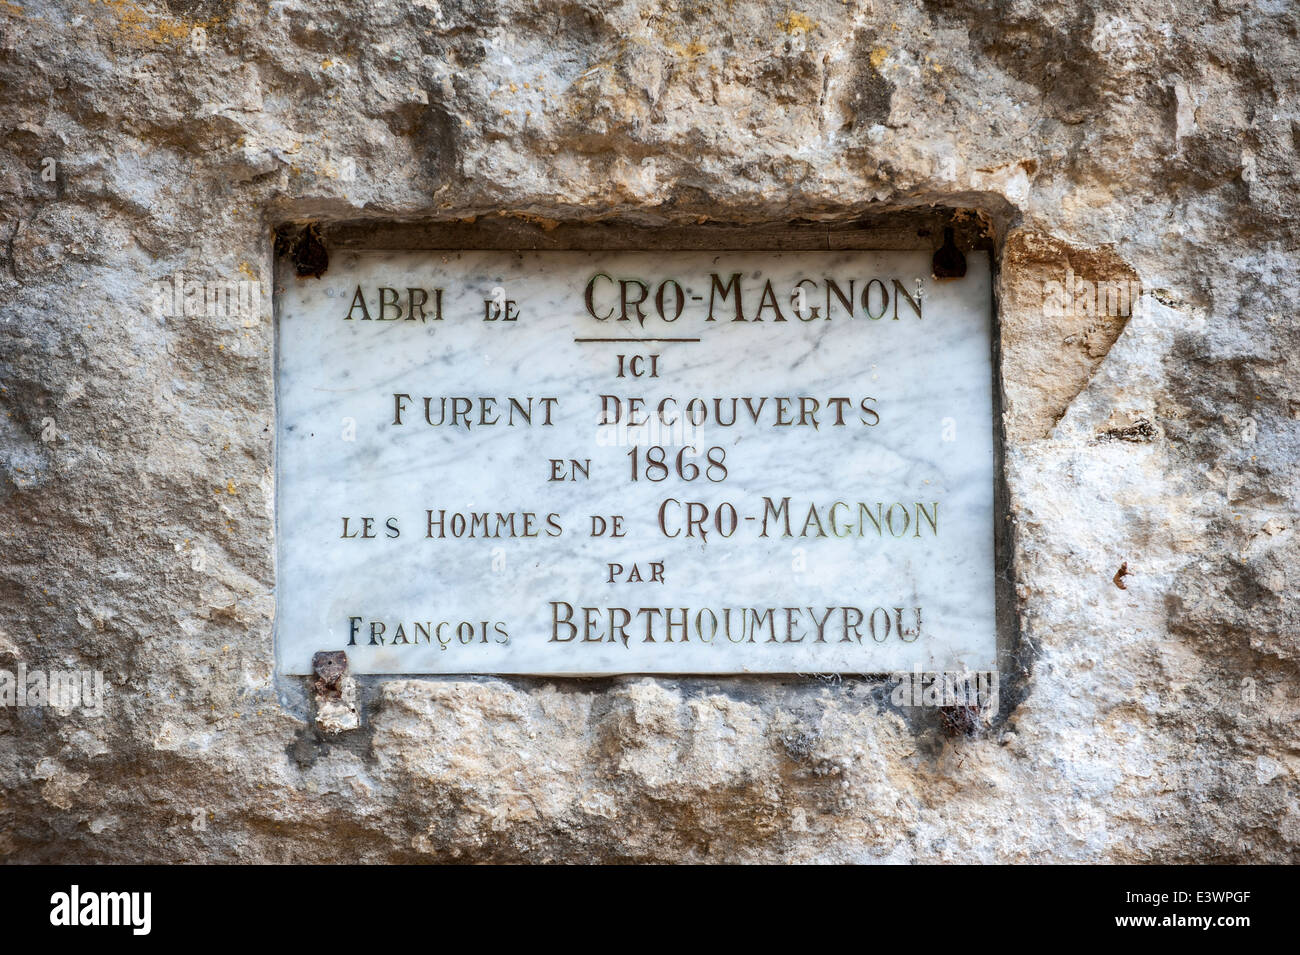 Plaque Commemorating Discovery Of Cro Magnon Man By